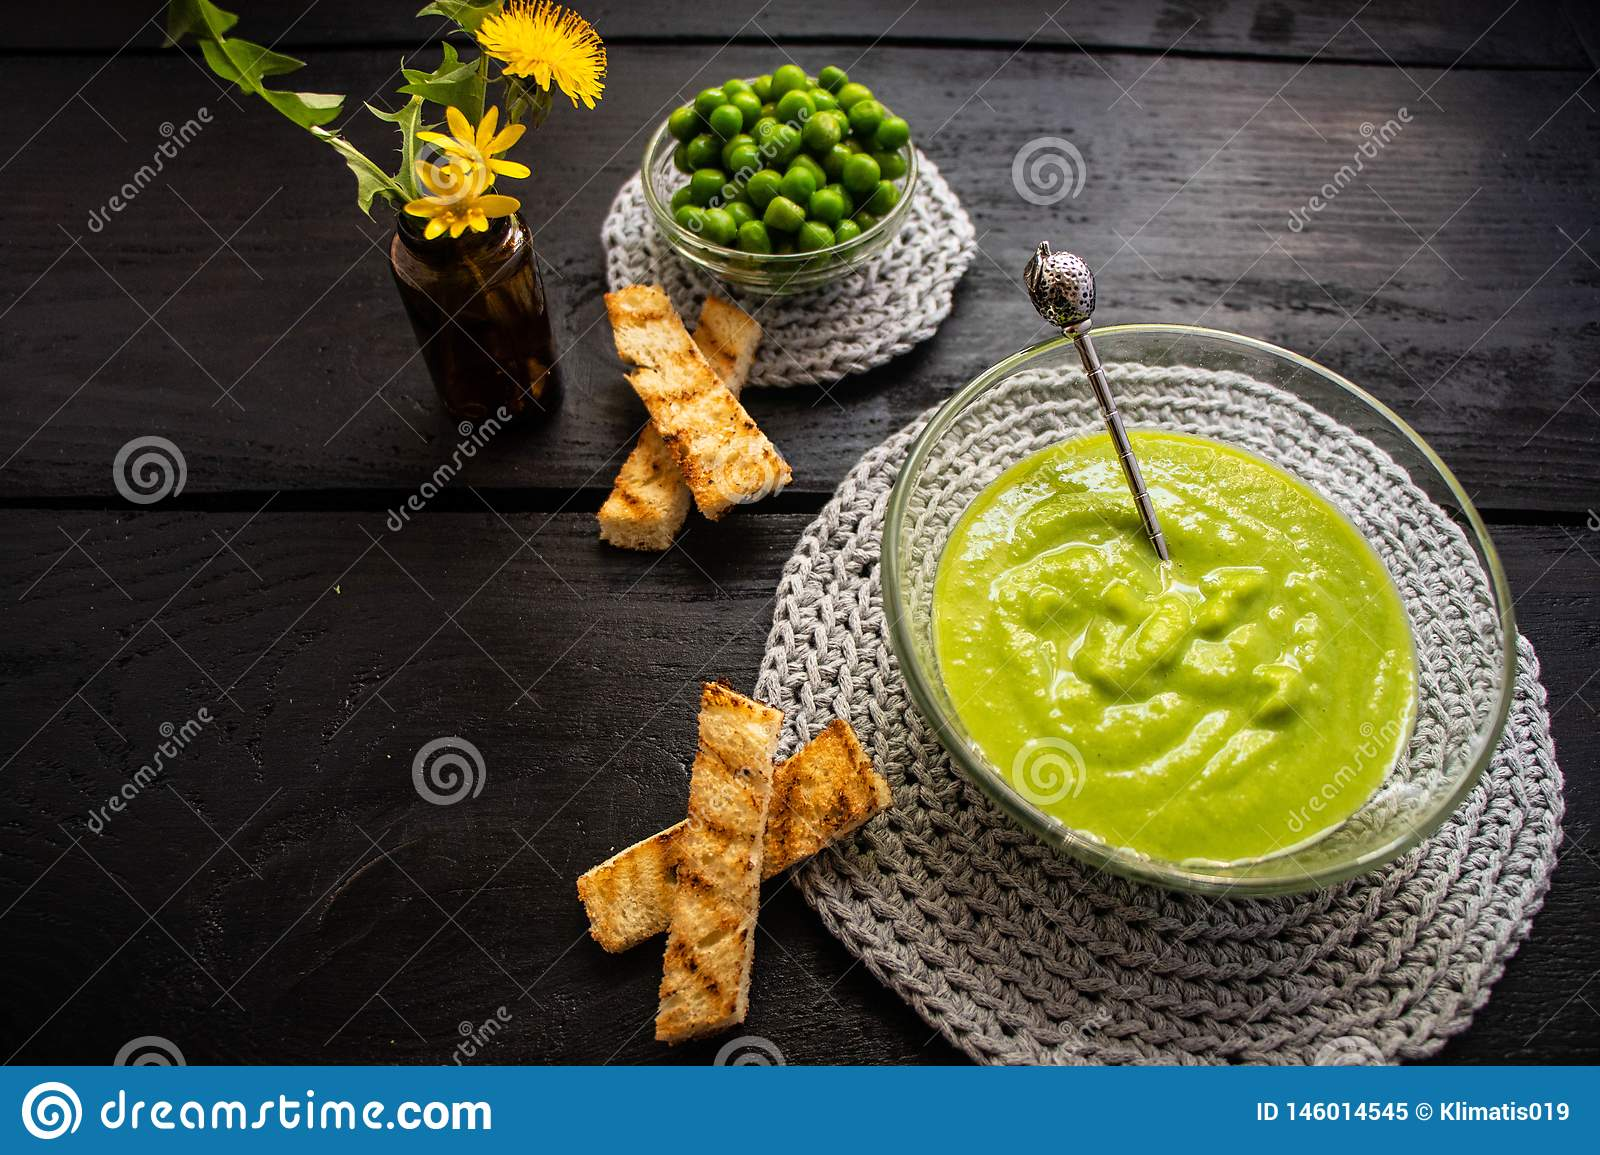 Mashed green peas, rubbed through a fine sieve.